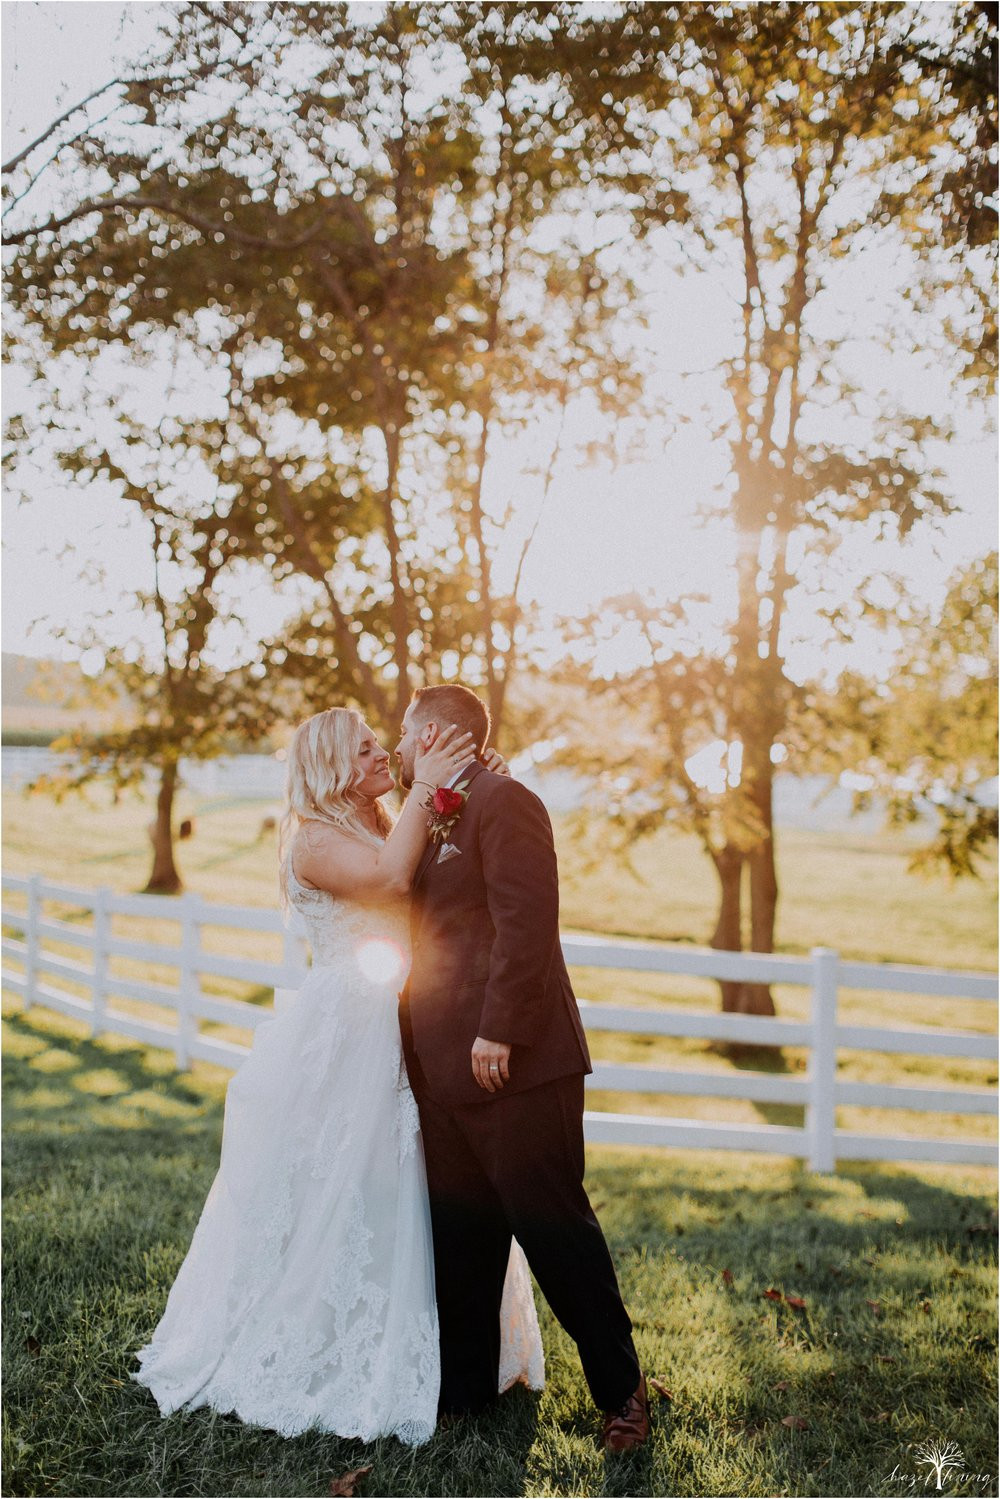 melanie-mnich-john-butler-the-barn-at-silverstone-summer-lancaster-pennsylvania-wedding-hazel-lining-travel-wedding-elopement-photography_0137.jpg